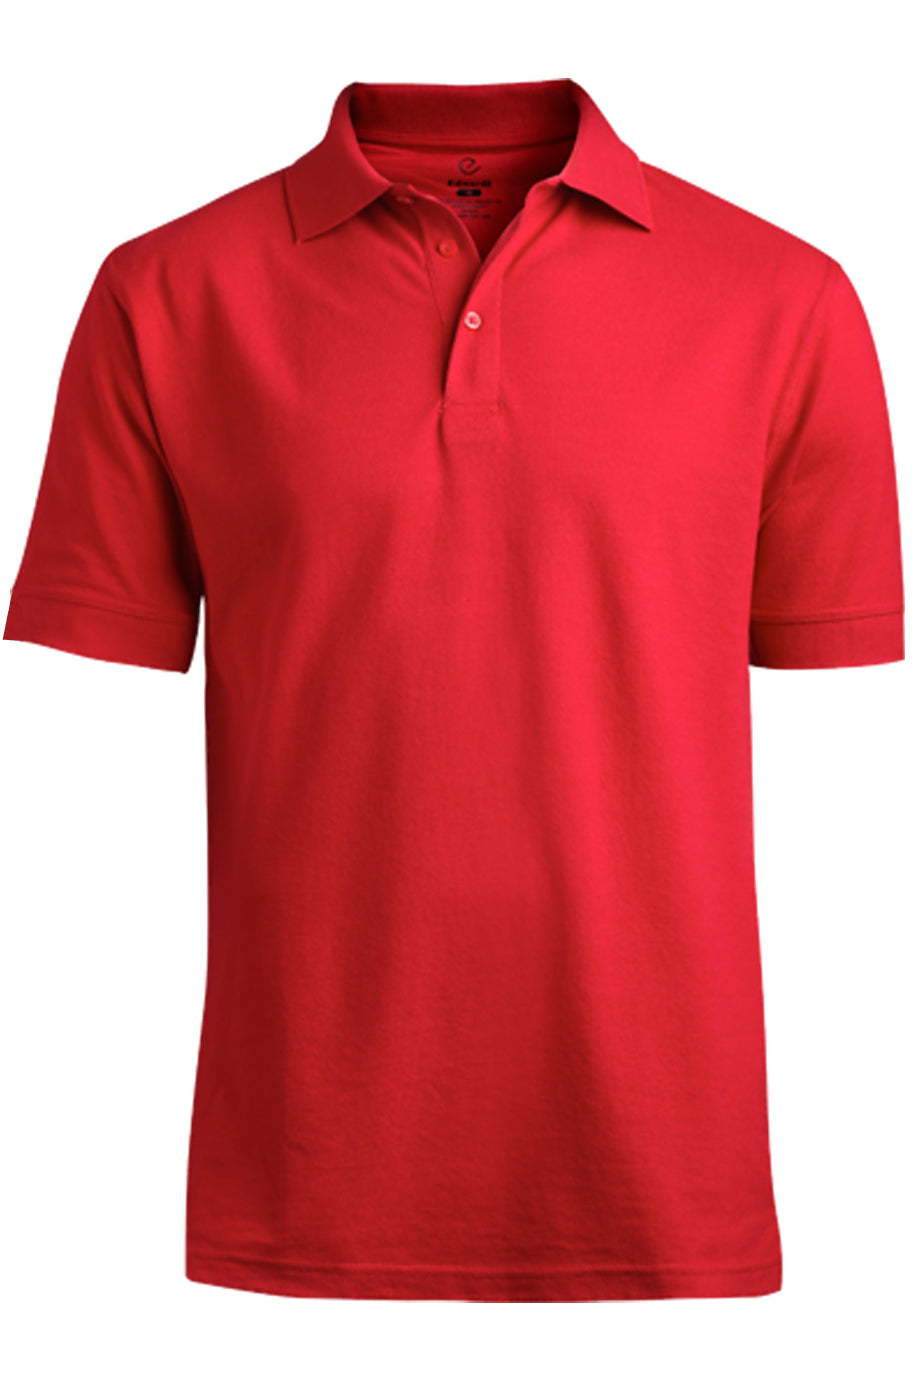 Red Edwards Mens Blended Pique Short Sleeve Polo